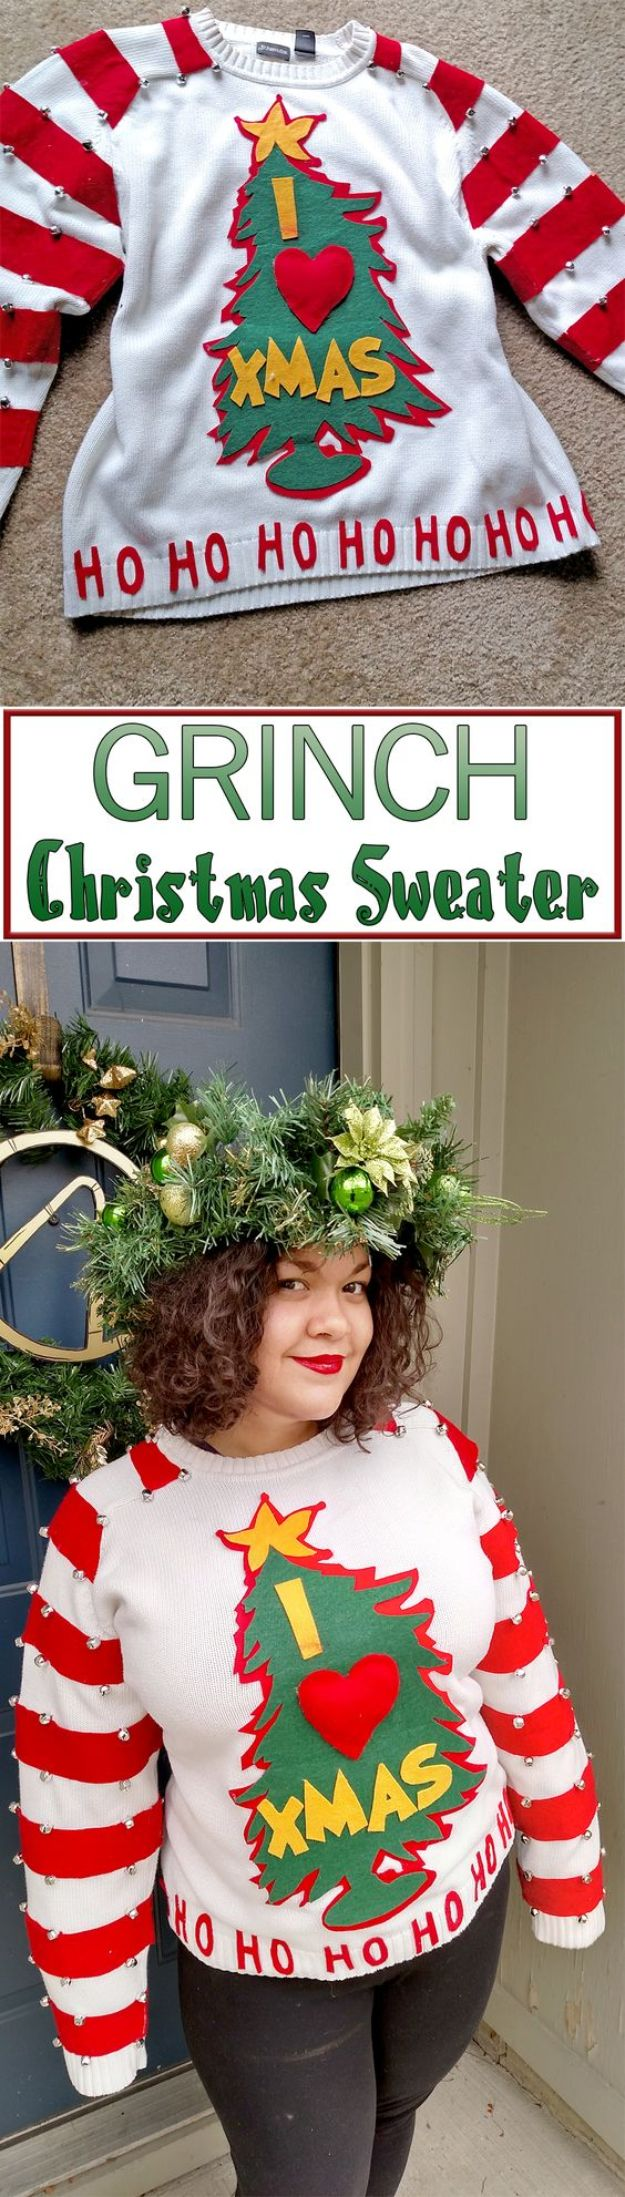 DIY Ugly Christmas Sweaters - Easy DIY Grinch Sweater - No Sew and Easy Sewing Projects - Ideas for Him and Her to Wear to Holiday Contest or Office Party Outfit - Funny Couples Sweater, Mens Womens and Kids https://diyjoy.com/diy-ugly-christmas-sweaters